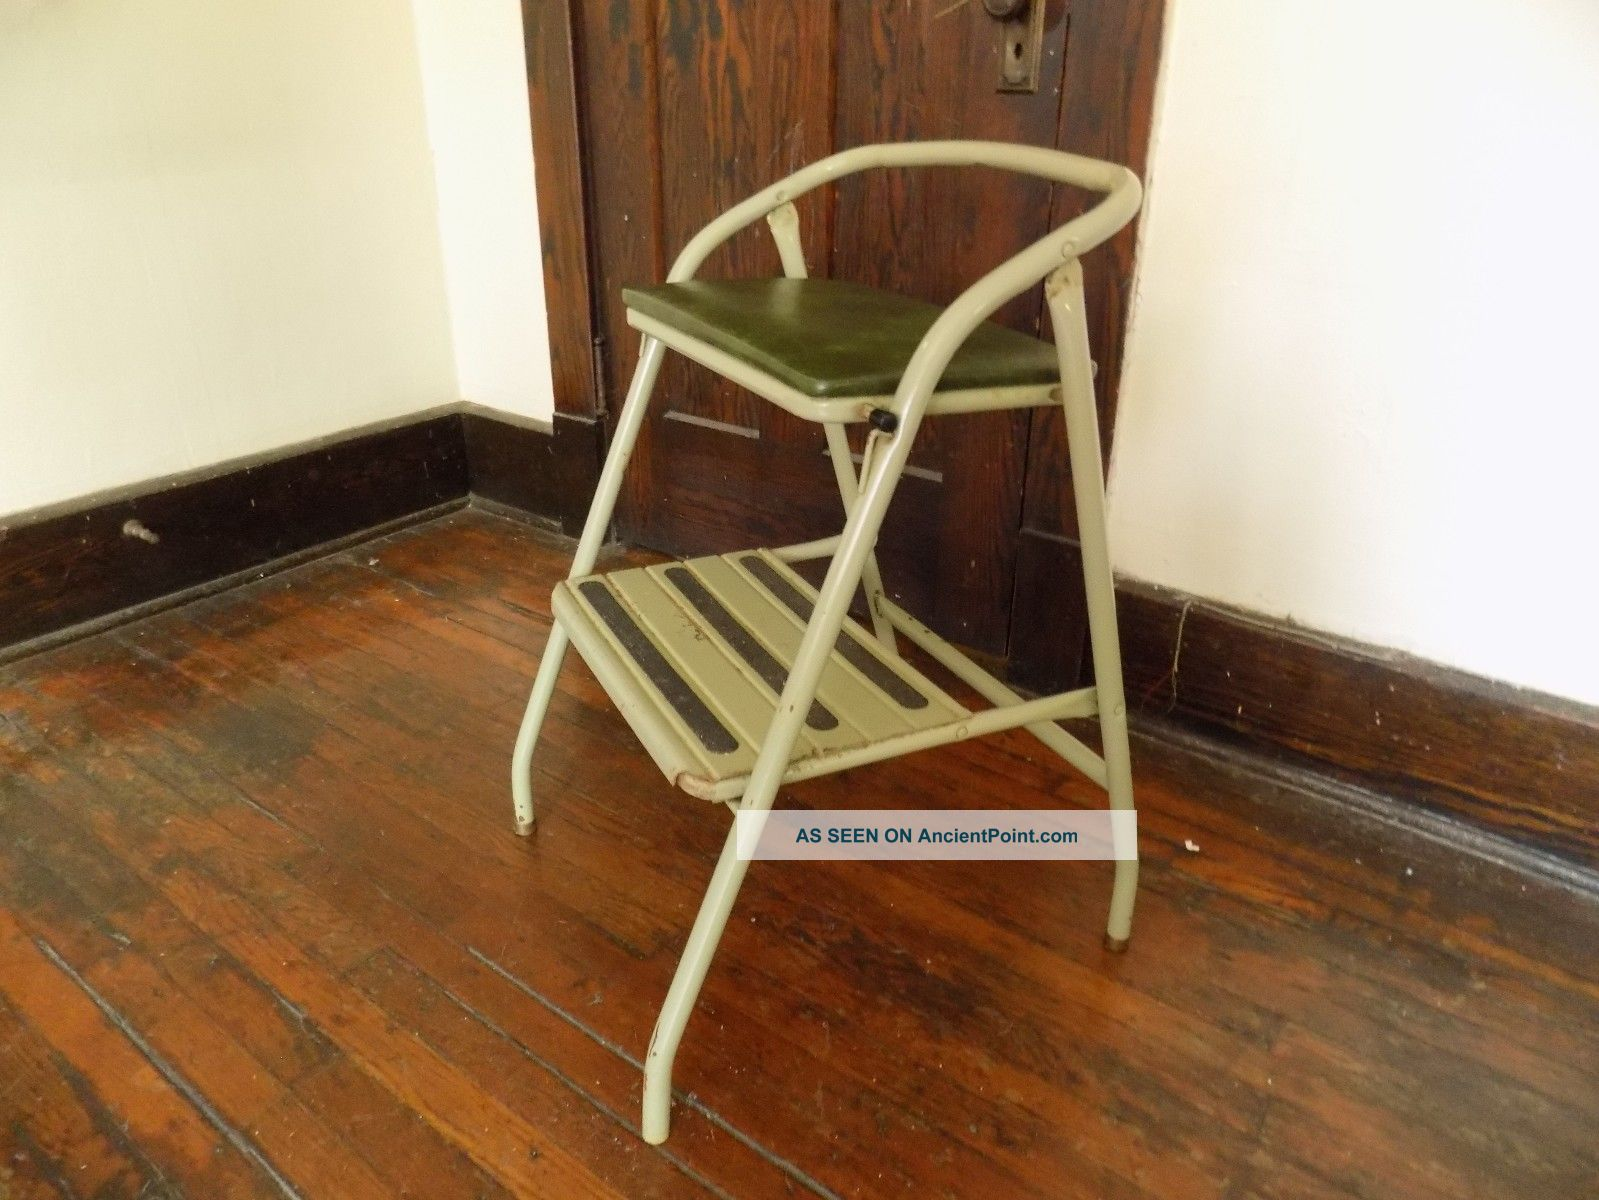 Vintage Step Stool Bench Seat Chair Green Stow Away Seat Retro Indiana